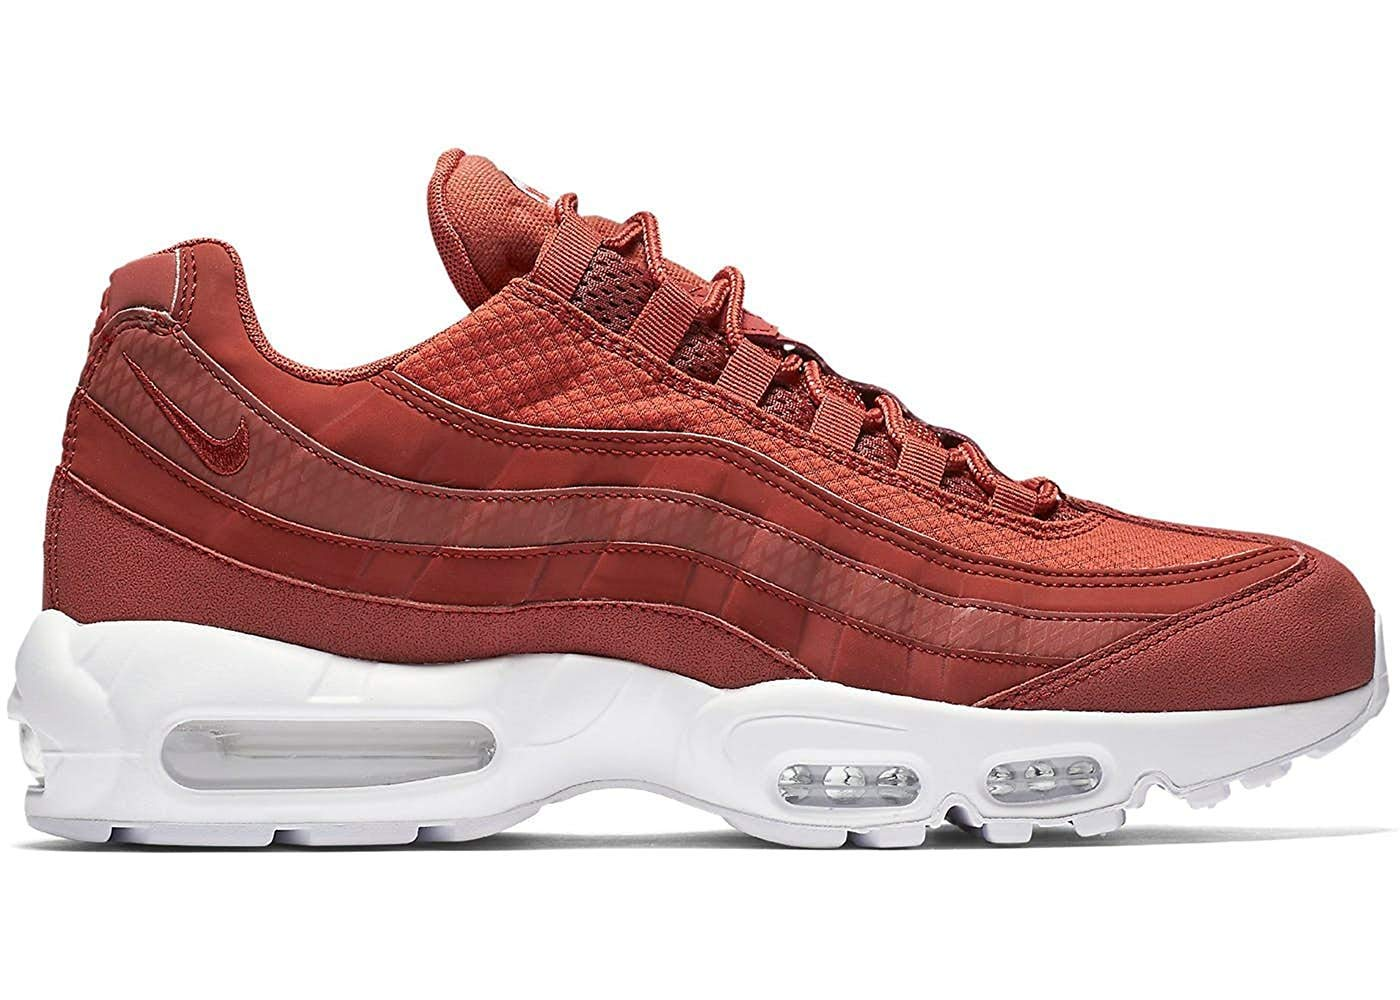 Nike Air Max 95 Premium SE Men Dusty Peach White 924478-200 (13)